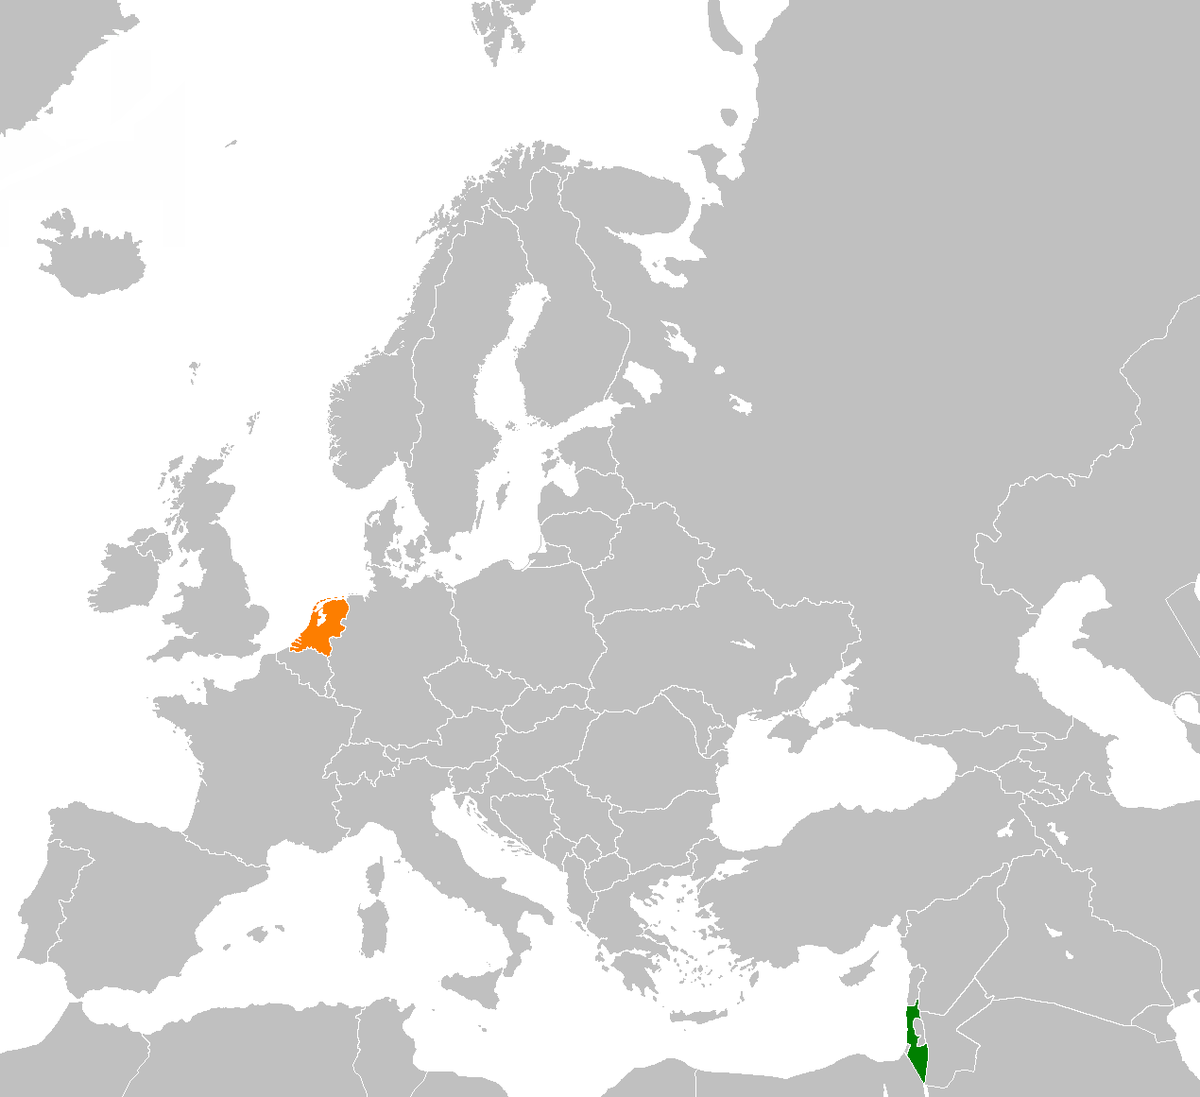 IsraelNetherlands Relations Wikipedia - Netherlands embassy kuwait map